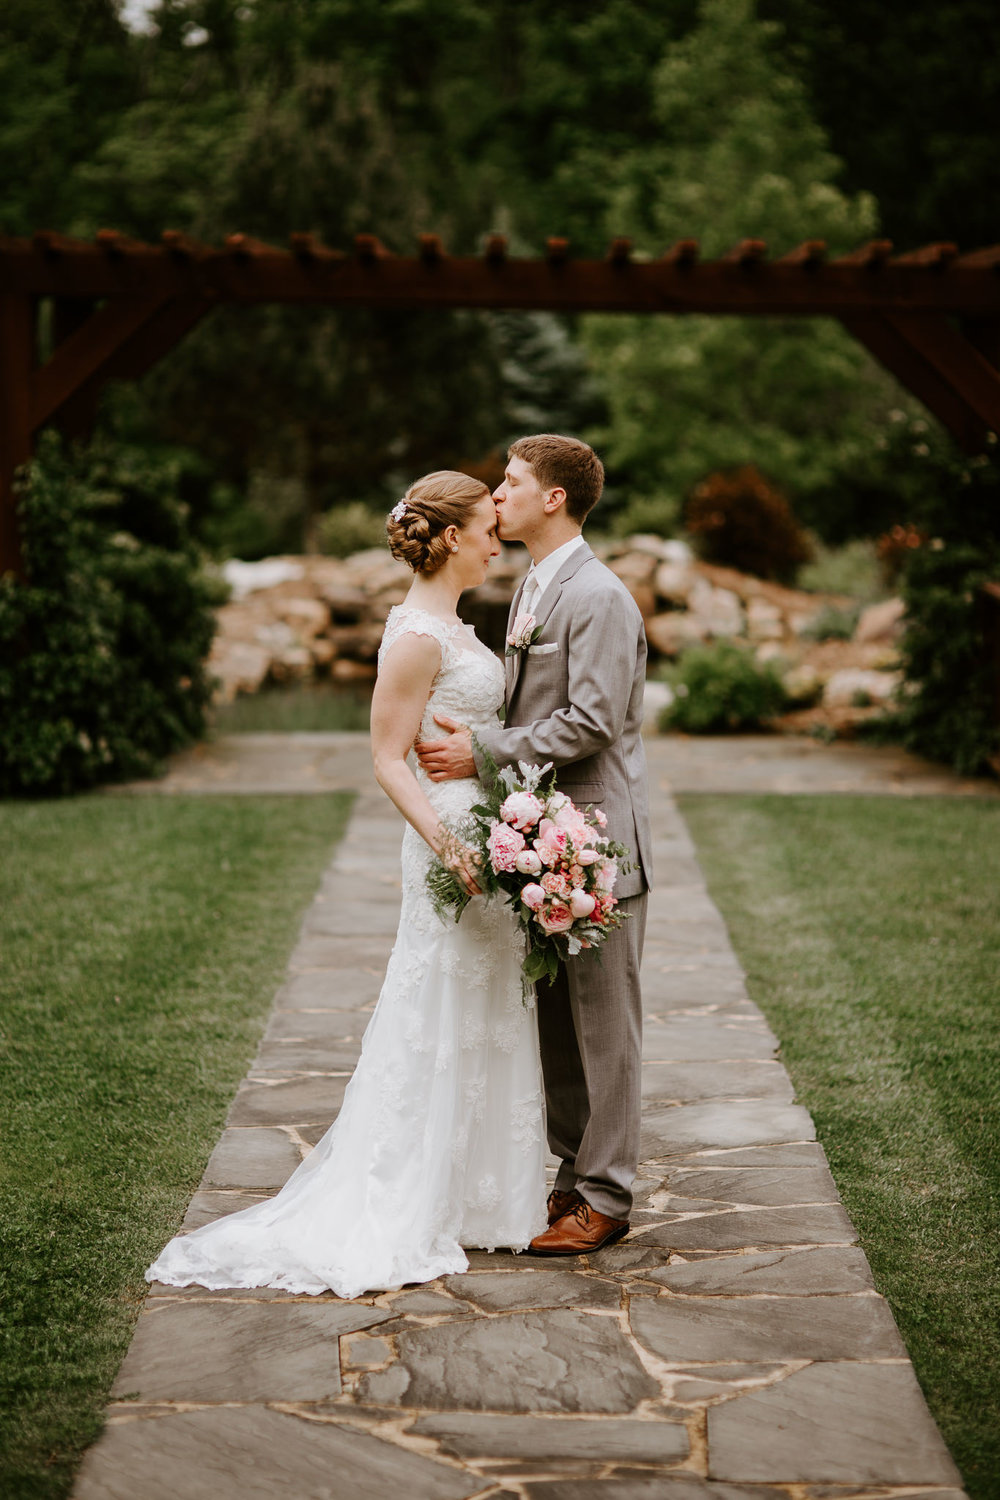 House Mountain Inn - Weddings - Lexington - Virginia - Best Wedding Photographer - Pat Cori Photography-31.jpg